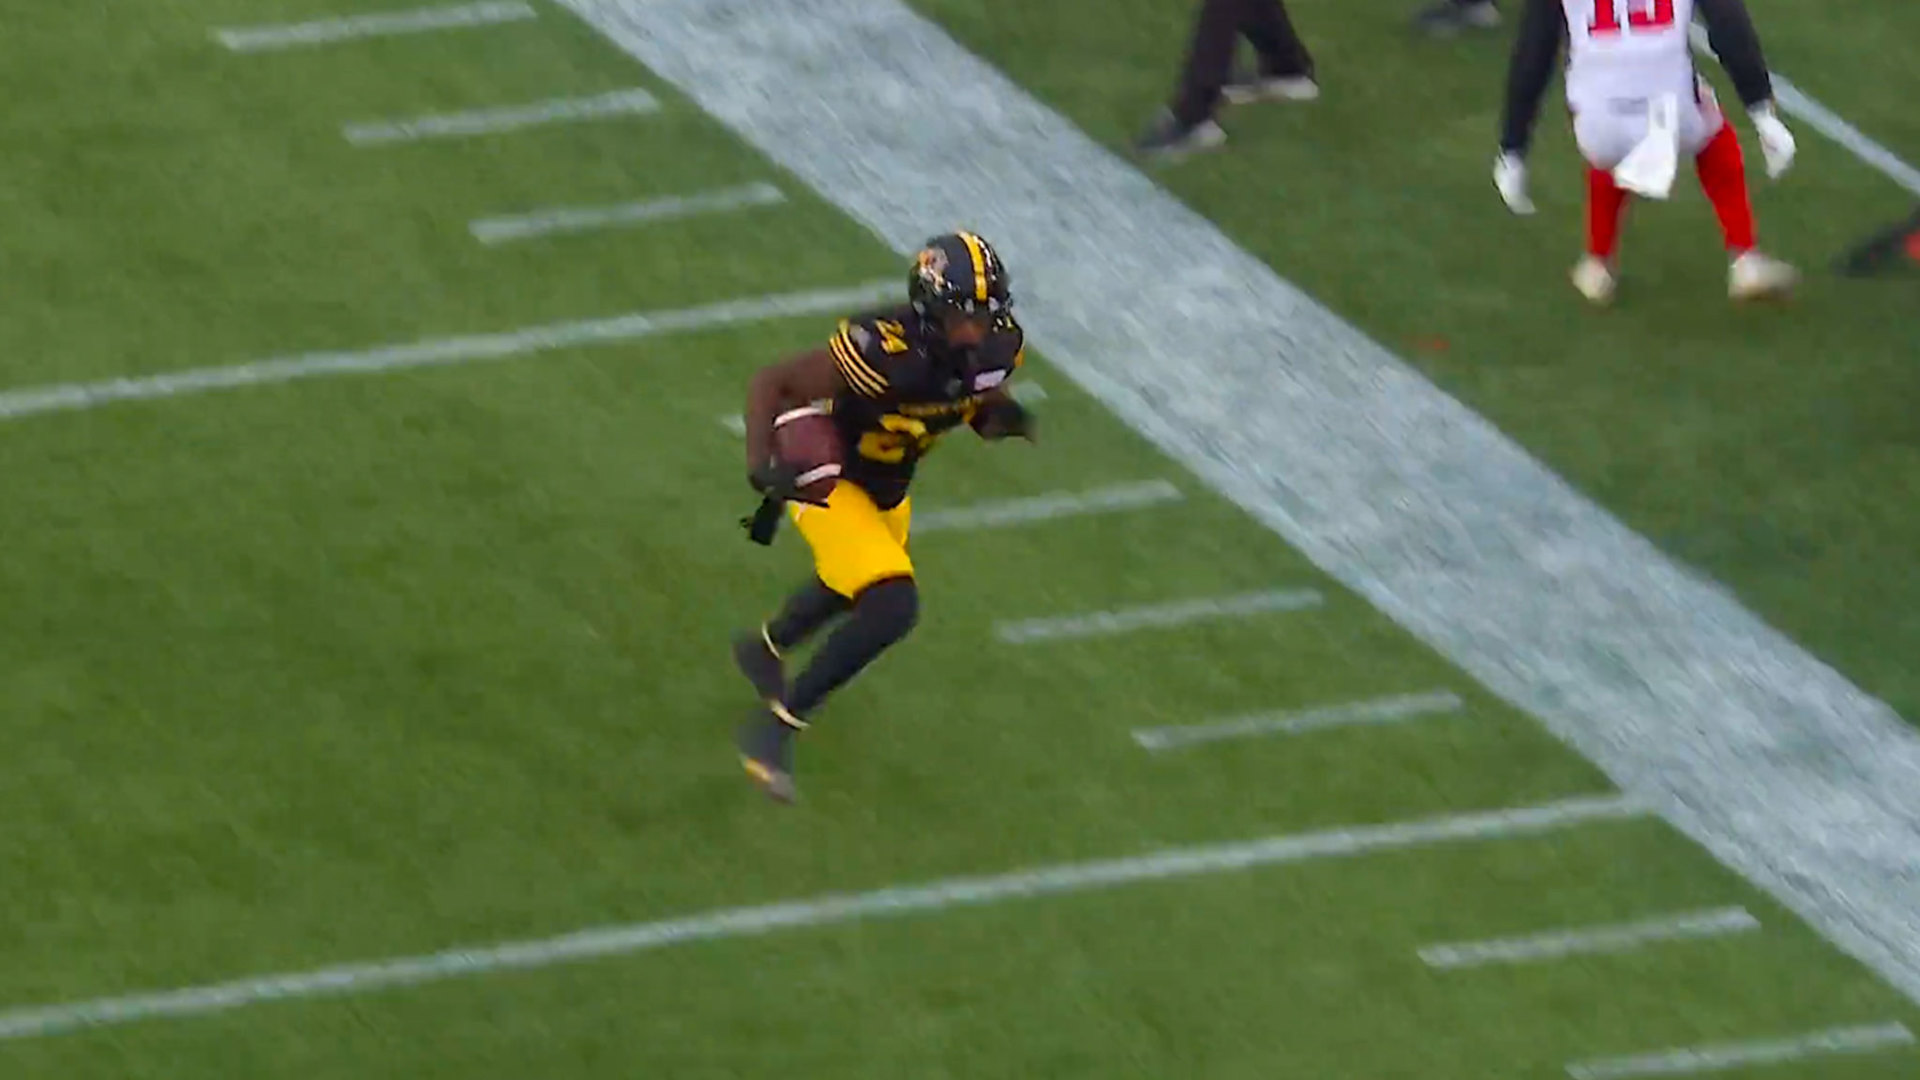 Desmond Lawrence's First Career INT sets up a score